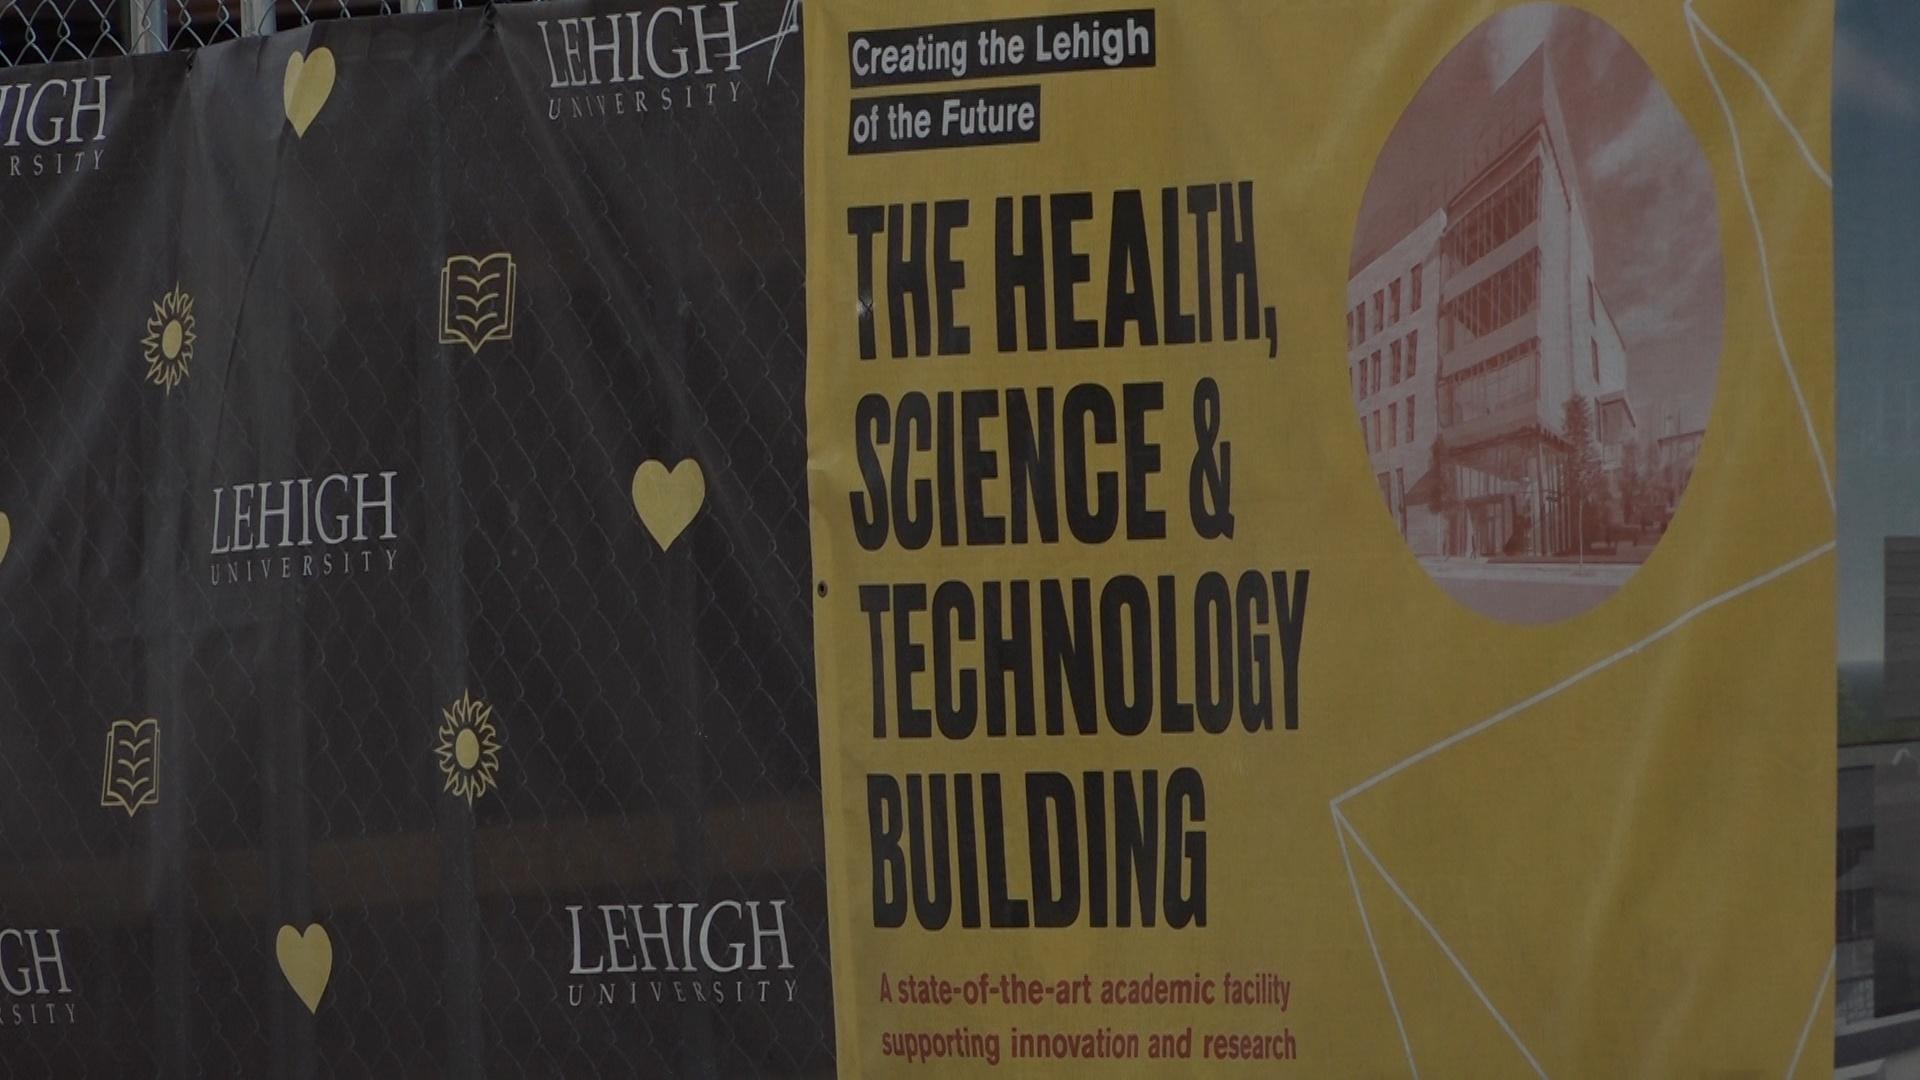 Construction on the Health, Science and Technology building